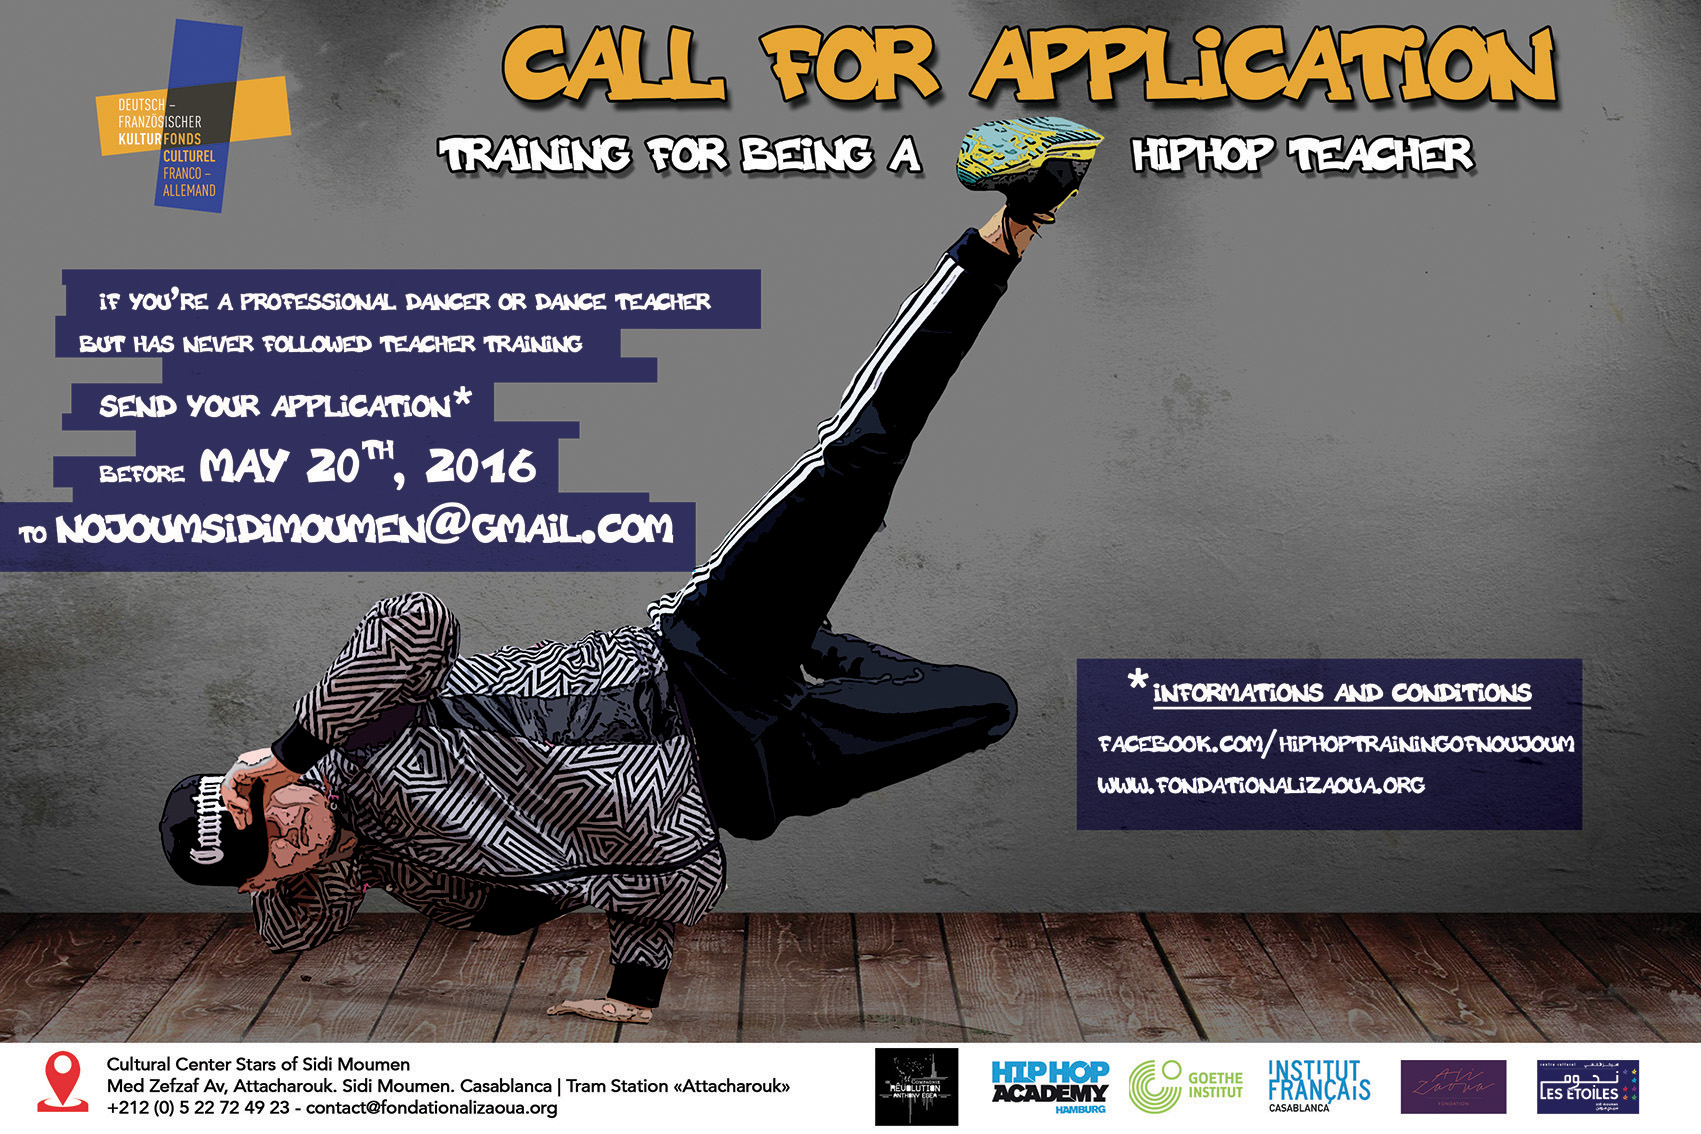 Call for app-Affiche-VUk_WEB